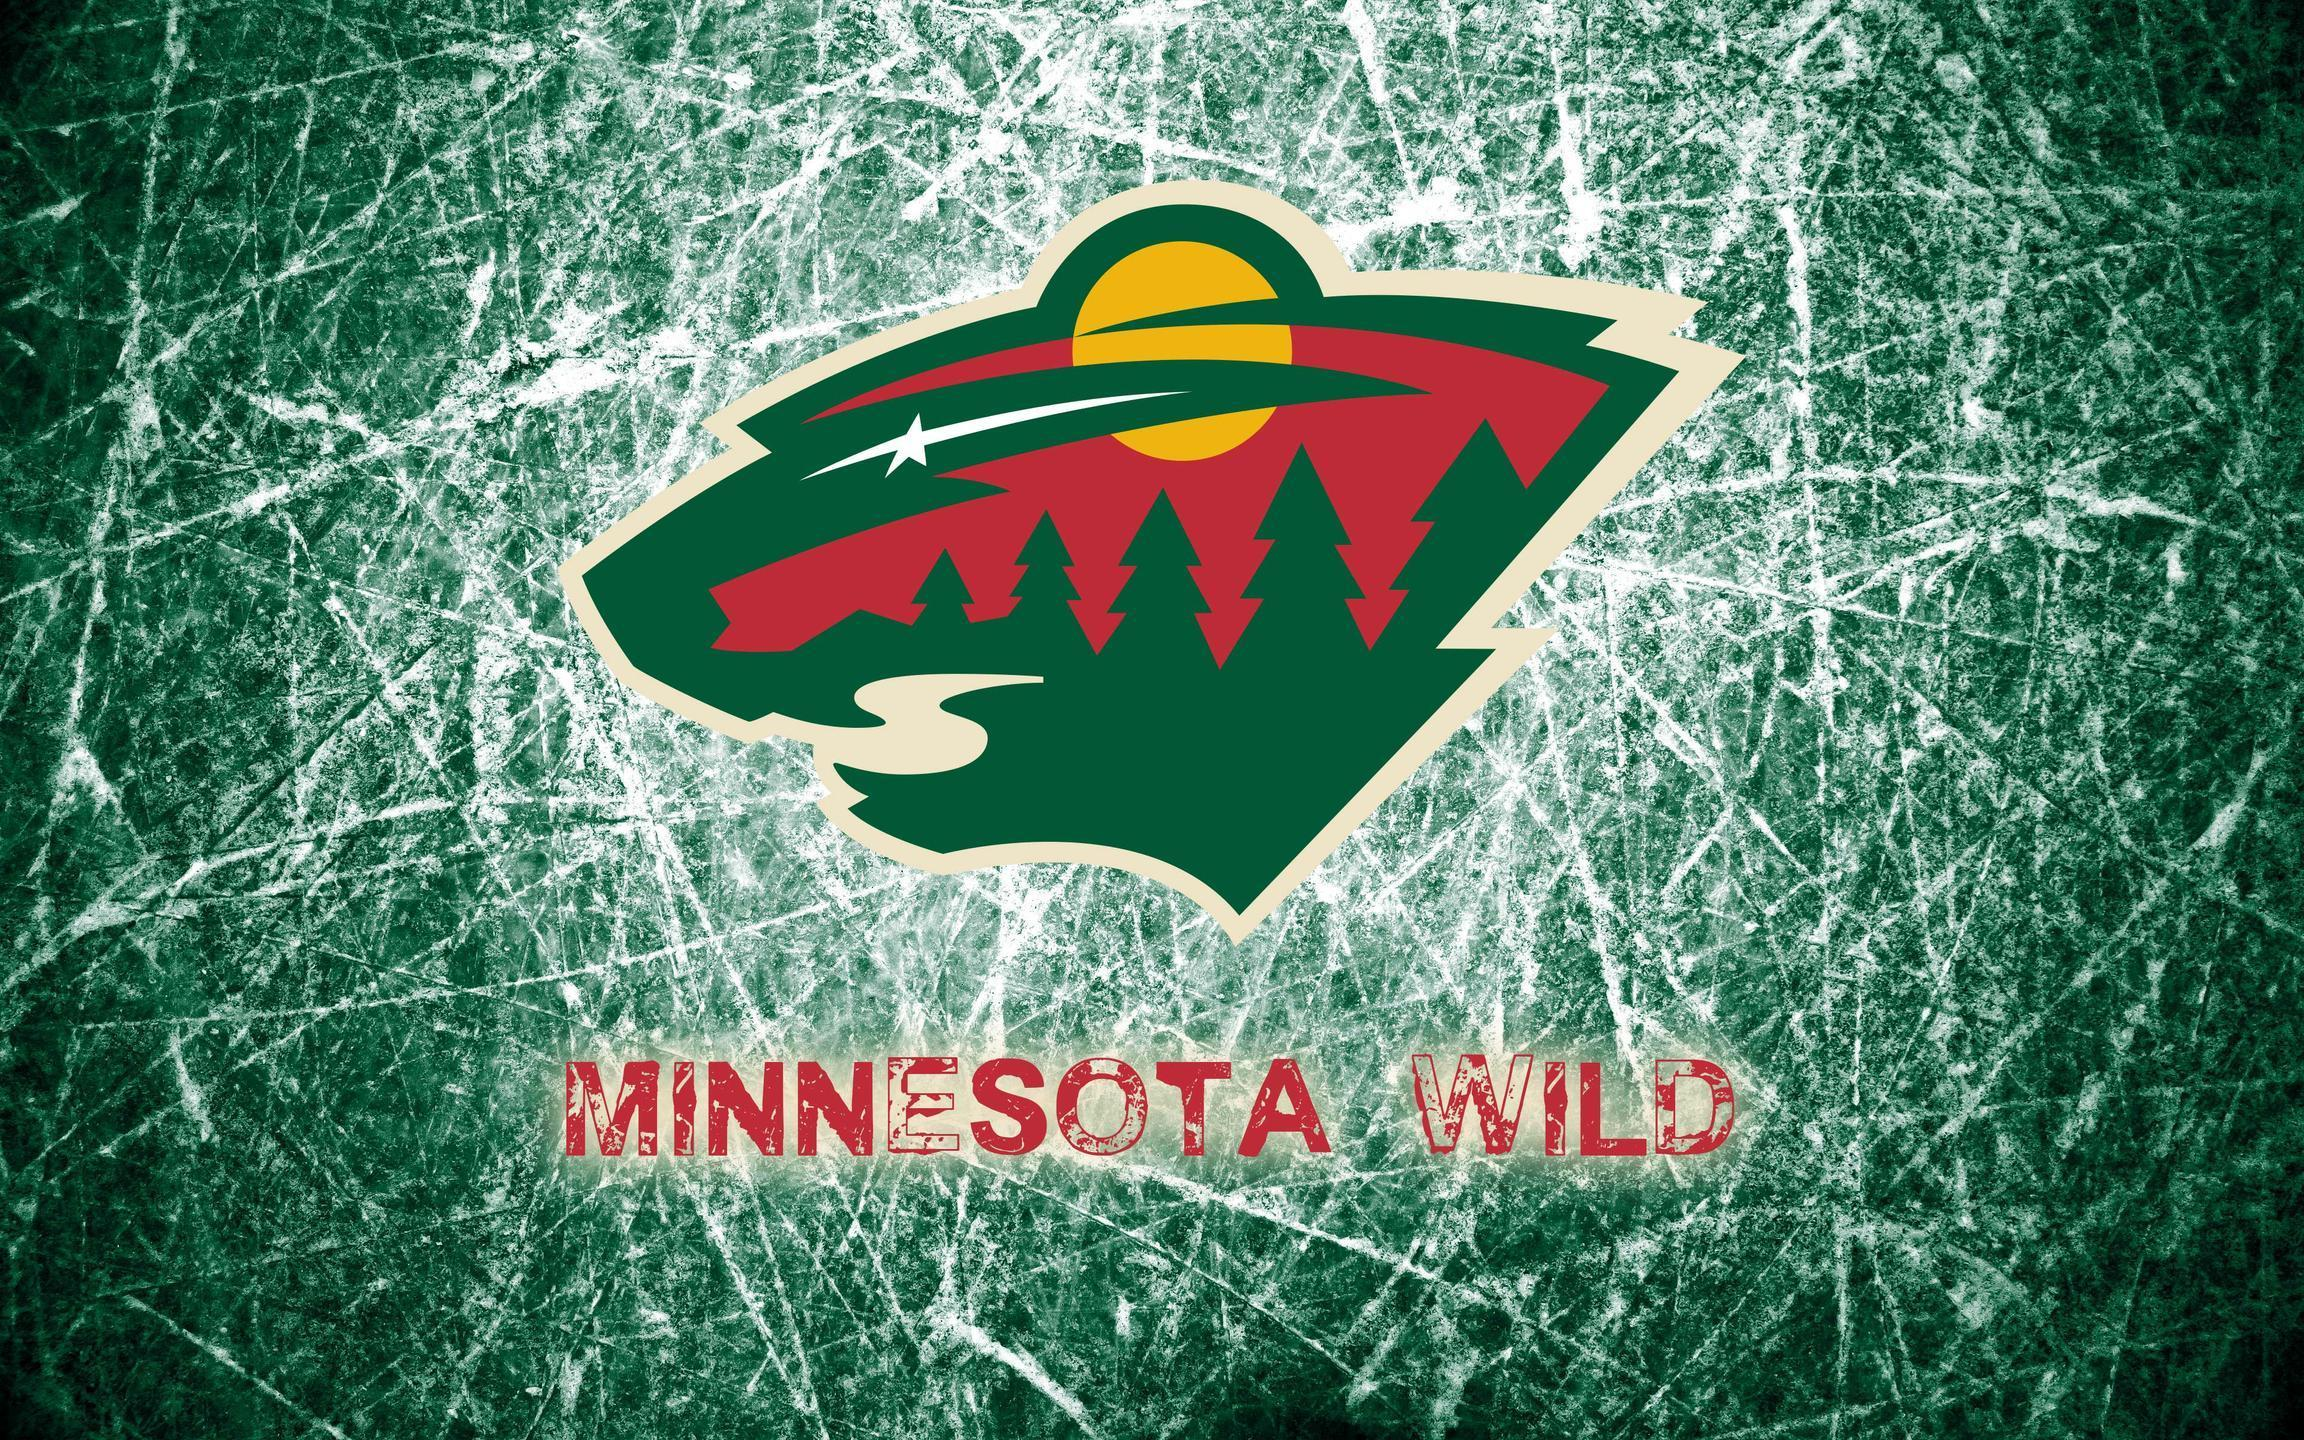 Hd Blackhawks Wallpaper Minnesota Wild Wallpapers Wallpaper Cave